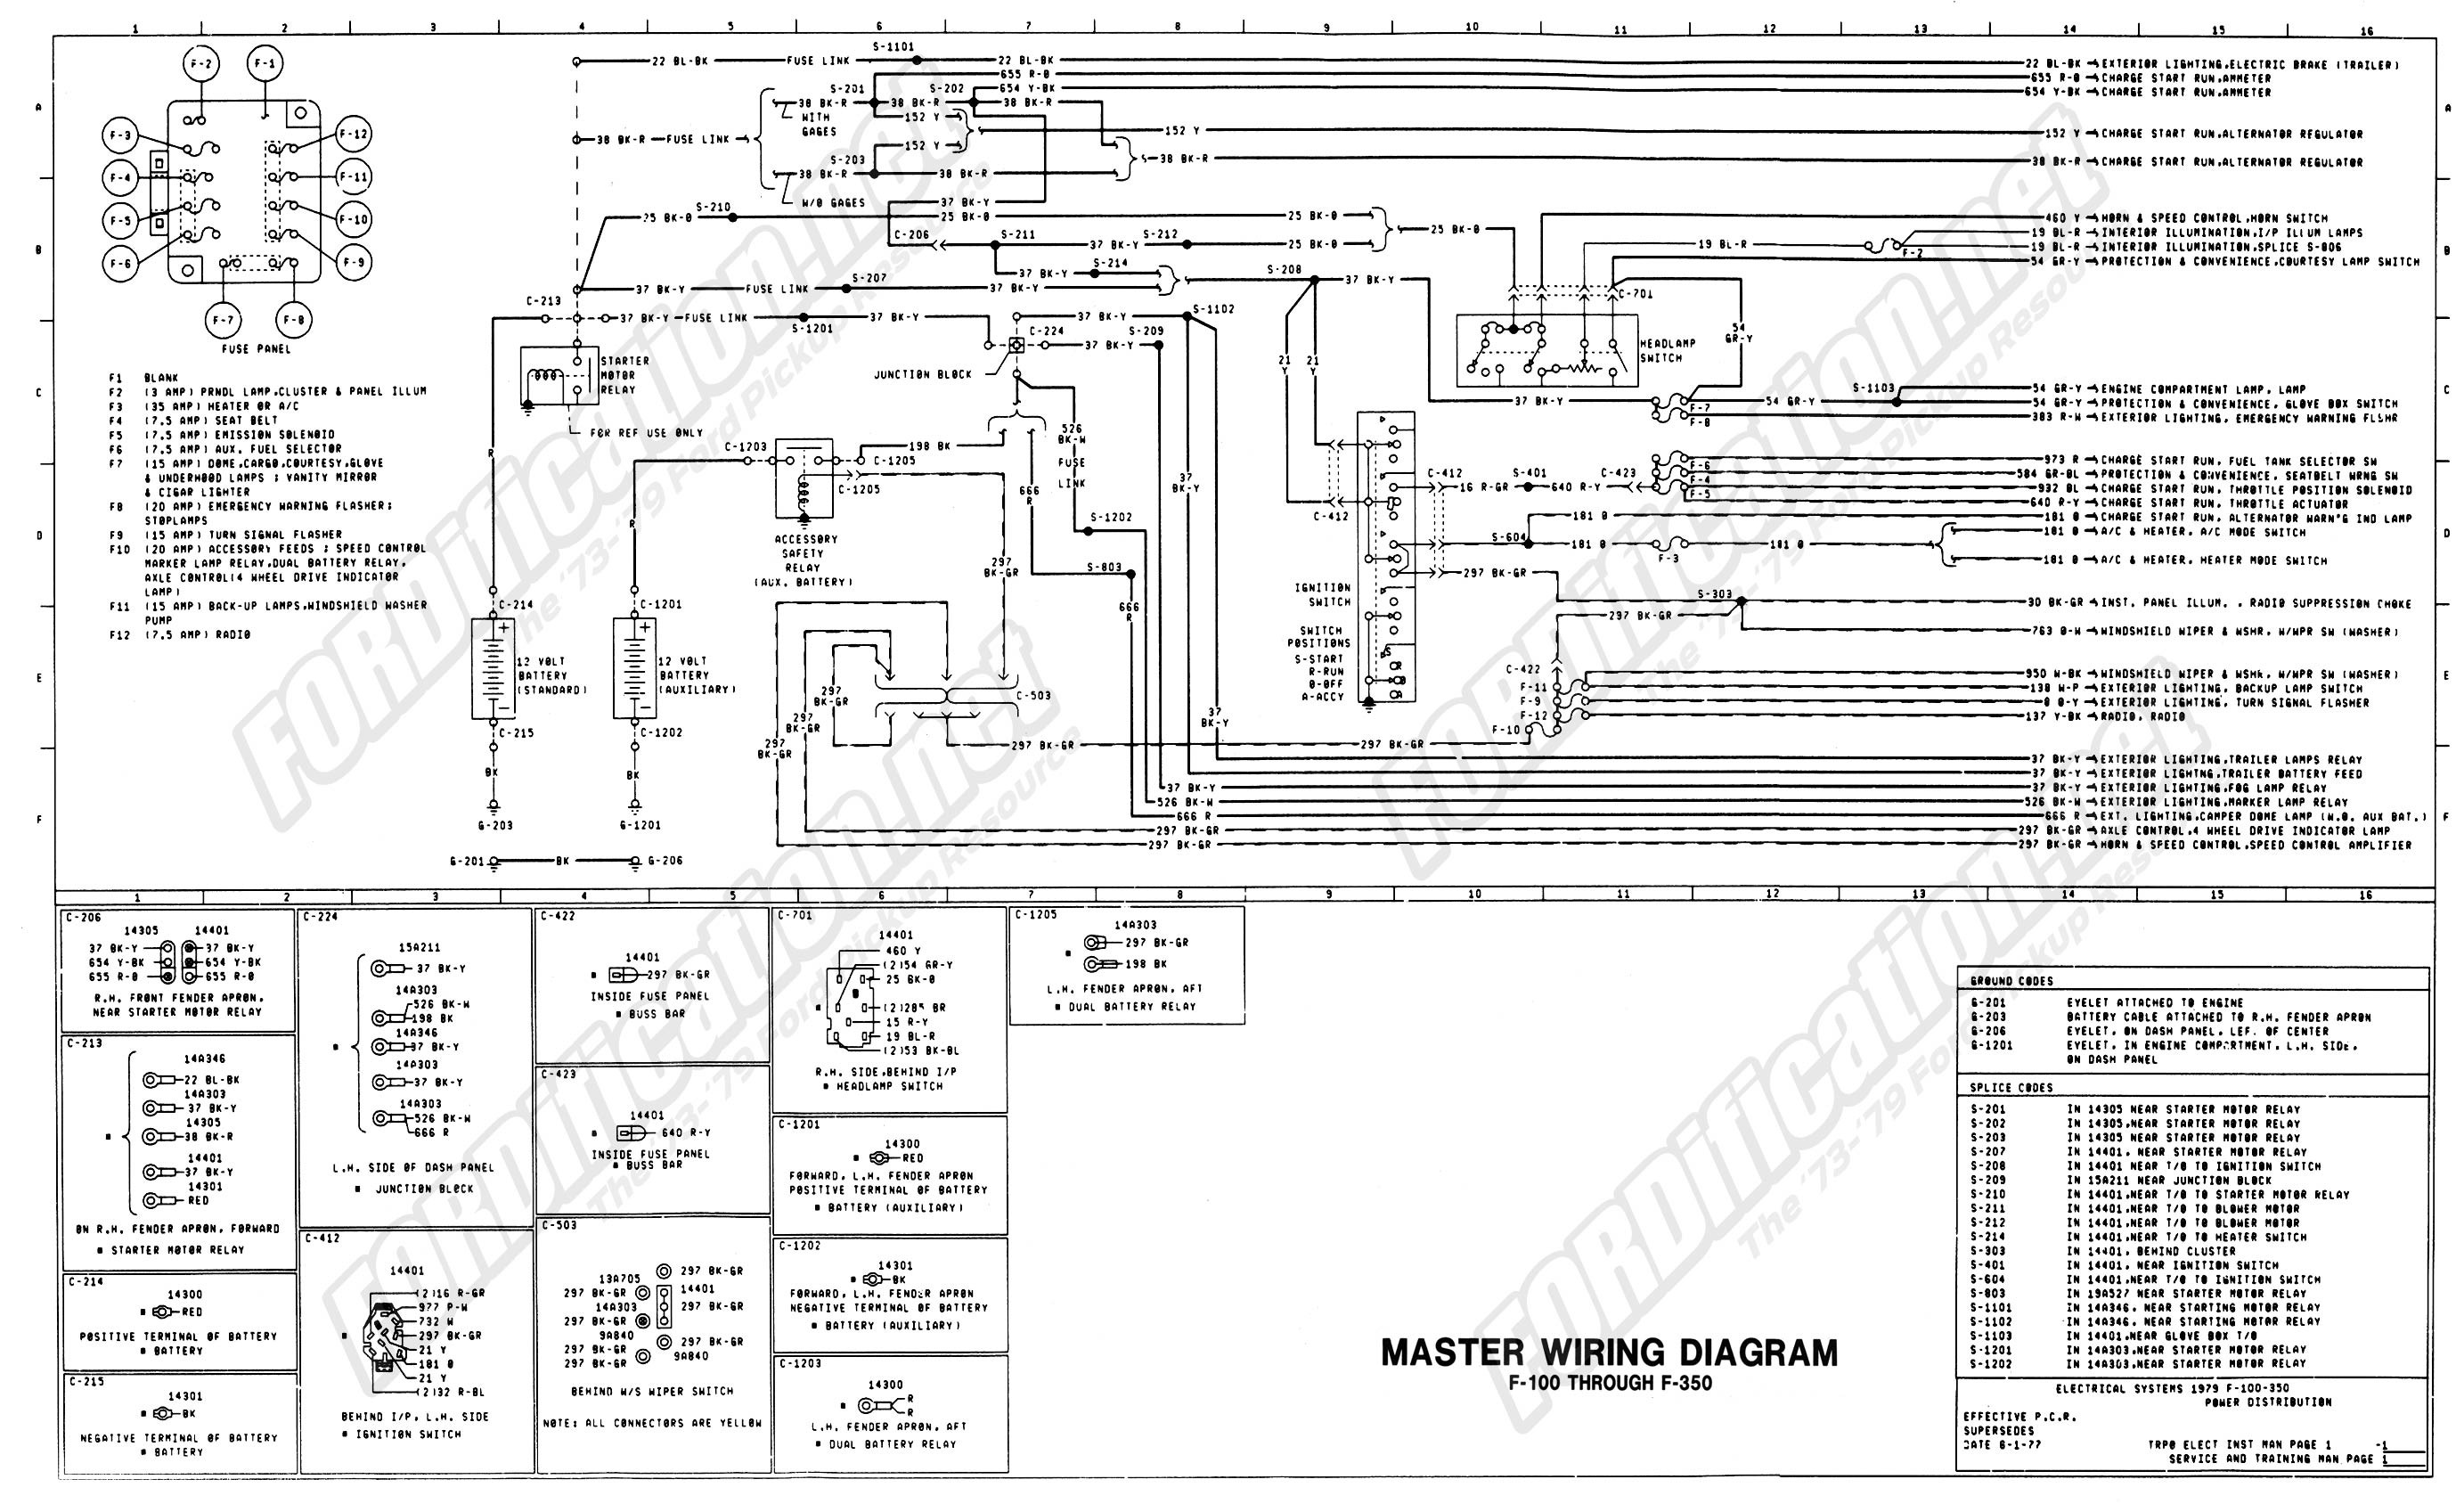 2010 ford F150 Wiring Diagram F150 Wiring Harness Further 1970 ford torino  Ignition Wiring Diagram Of